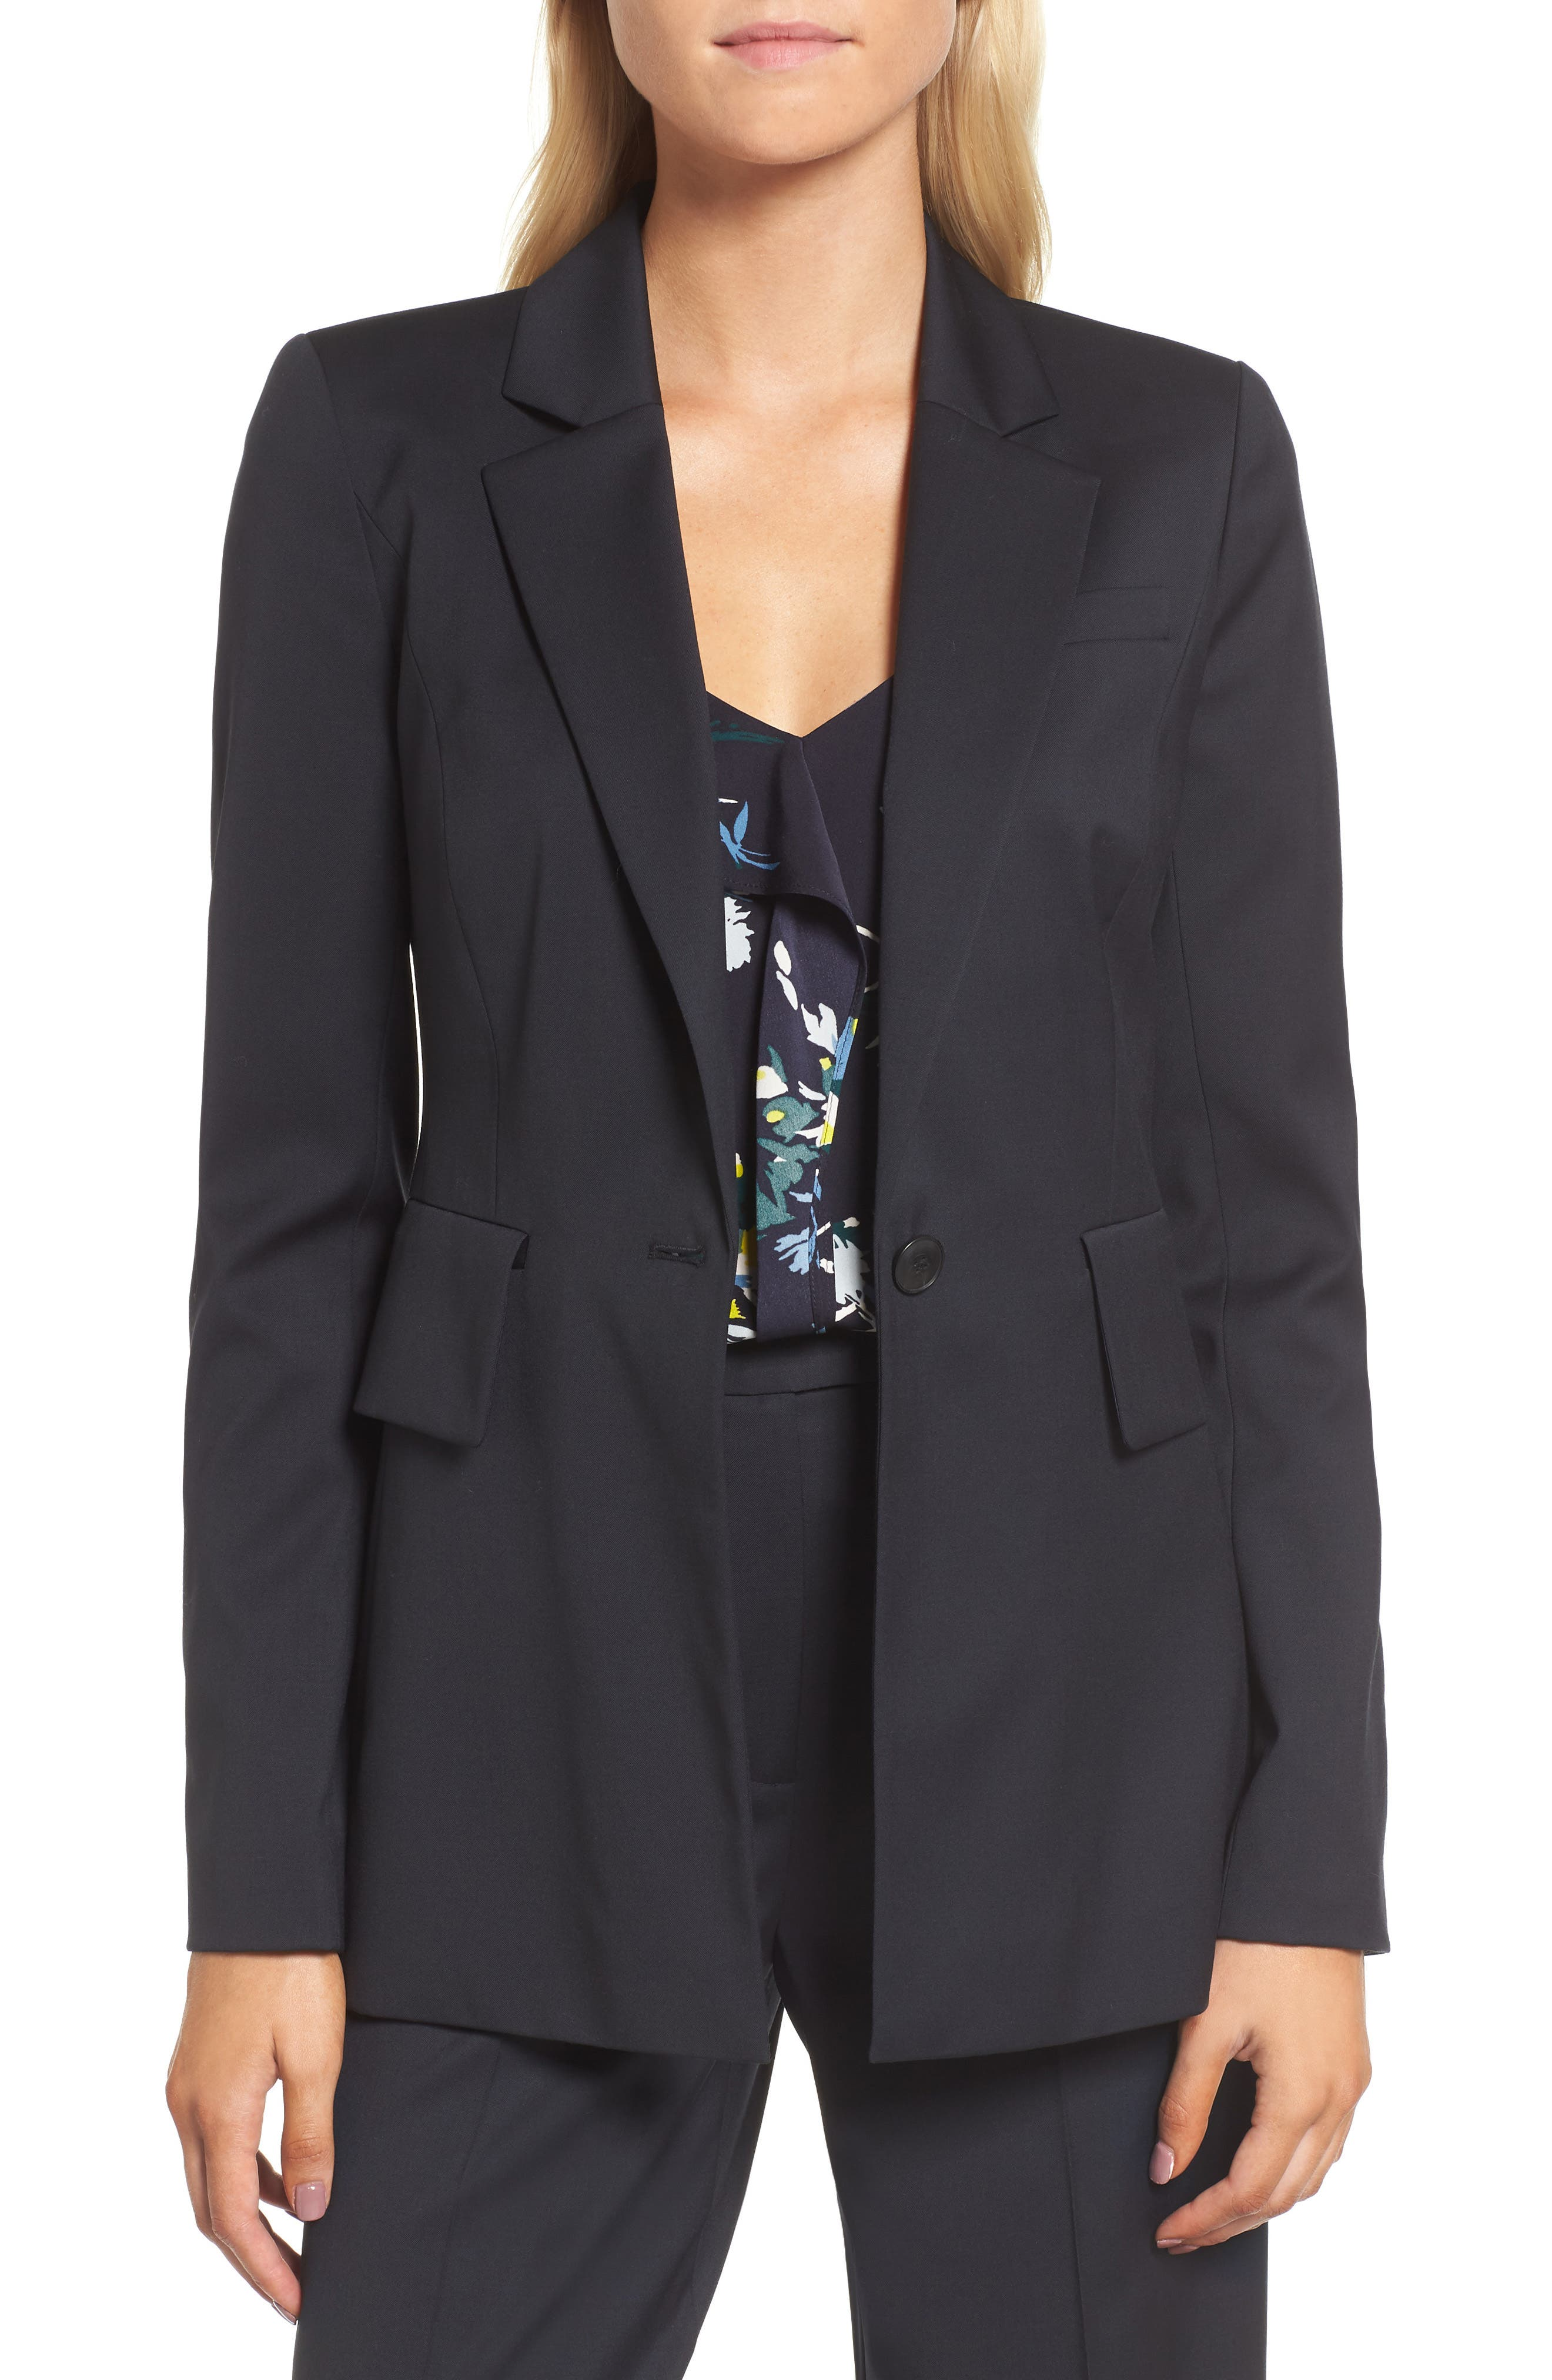 Alternate Image 1 Selected - Lewit Square Shoulder Suit Jacket